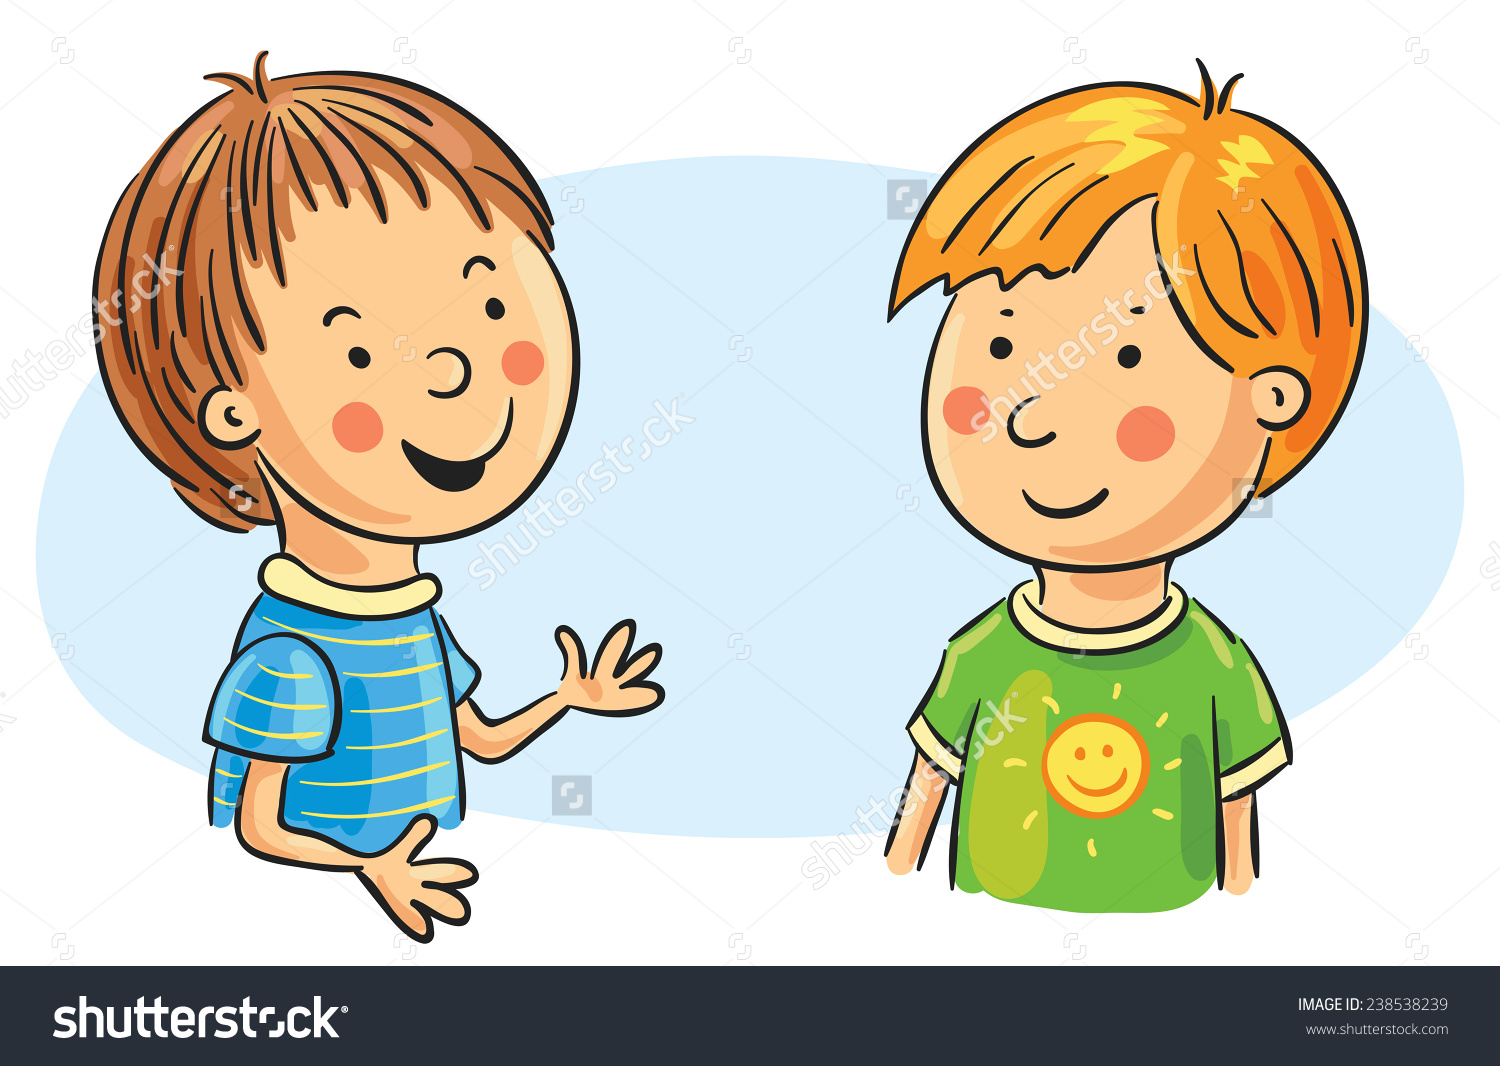 Related Keywords & Suggestions for Two Kids Talking To Each Other.